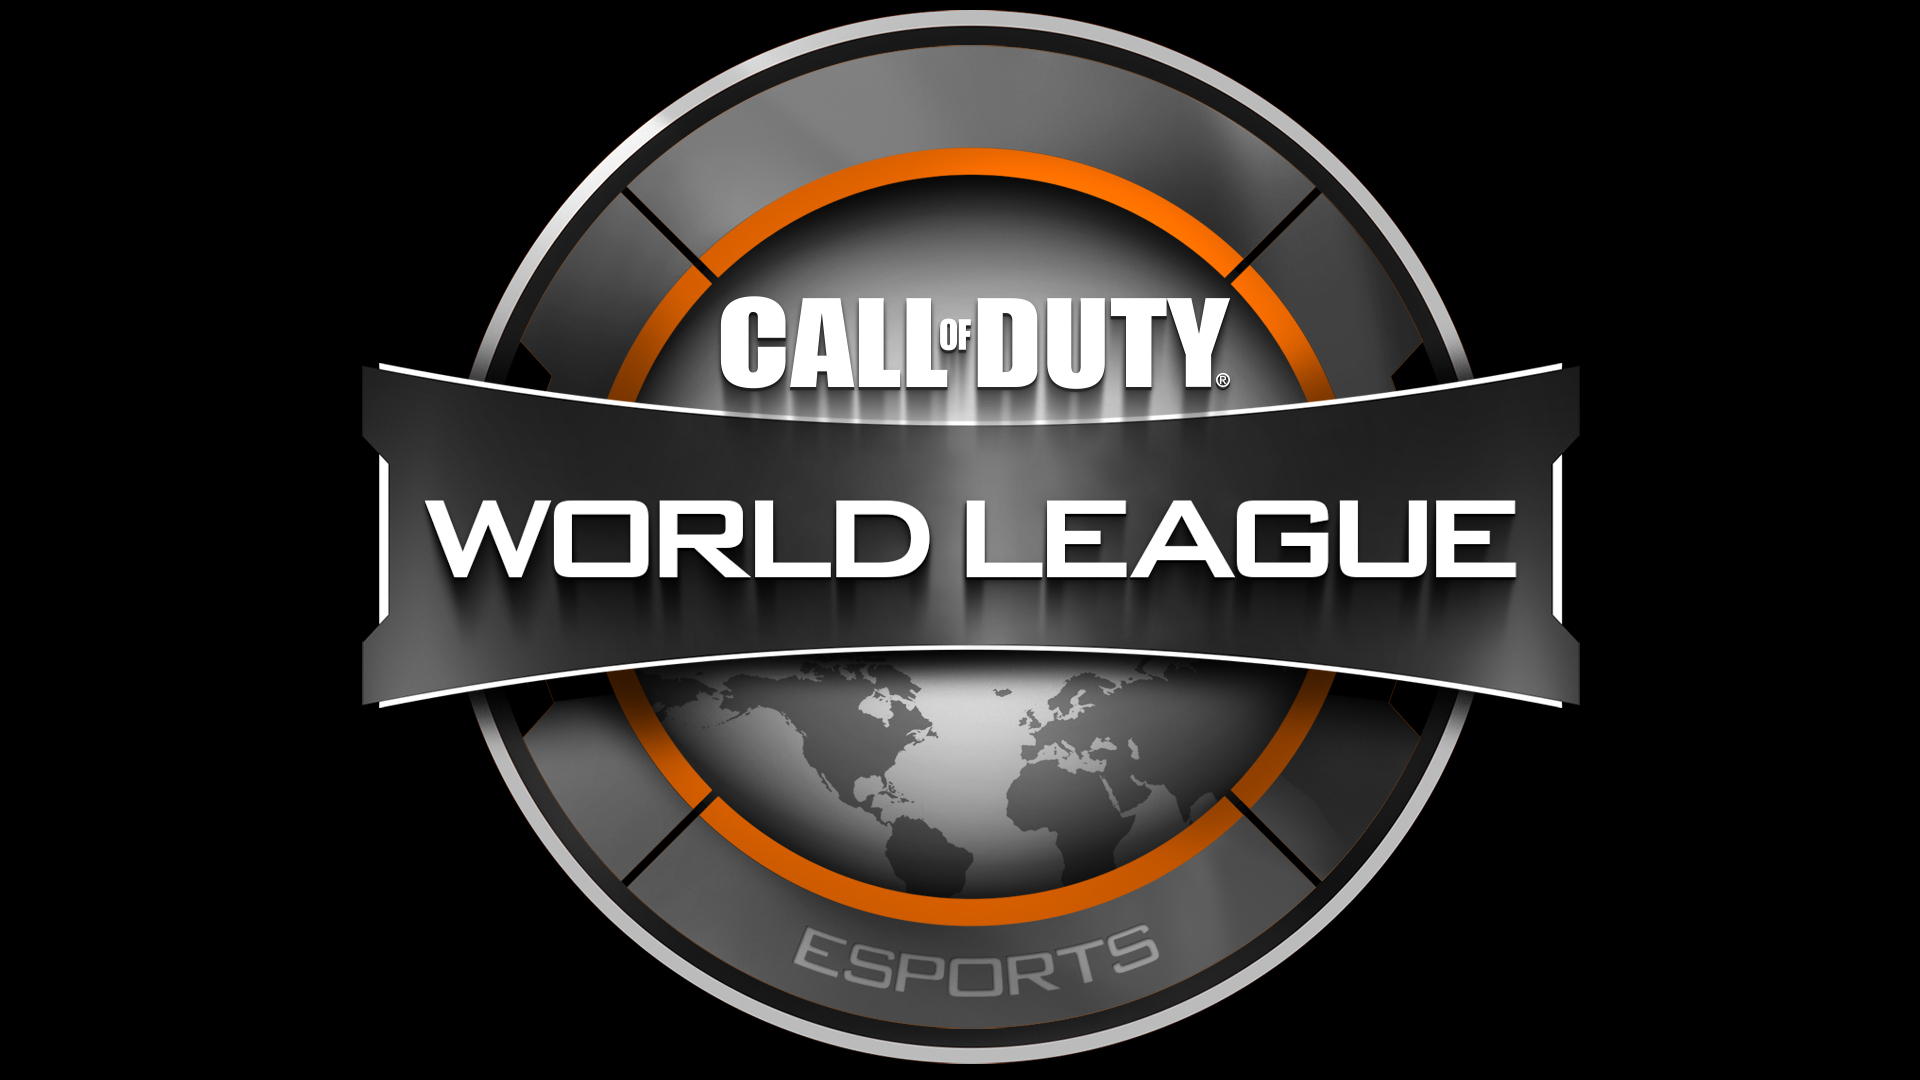 Call_of_Duty_World_League-pc-games